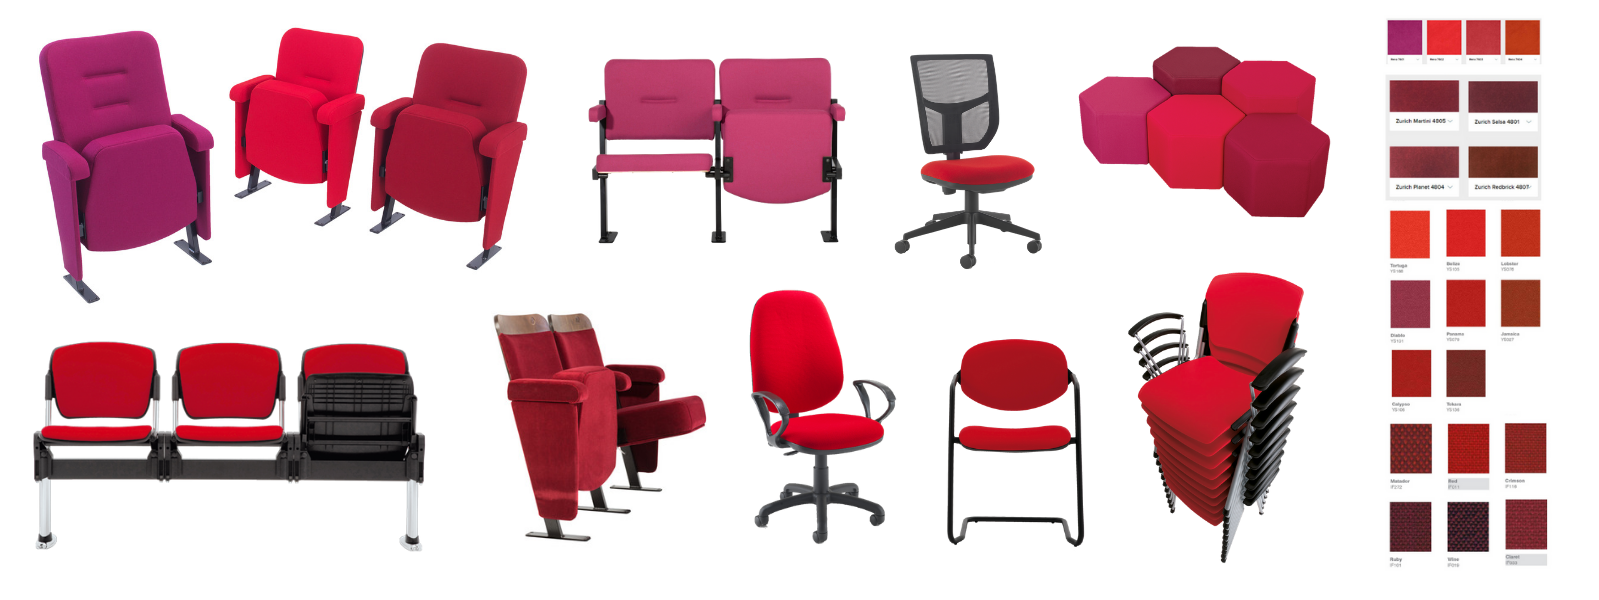 Selection of different chair styles in a variety of red fabrics with colour swatches